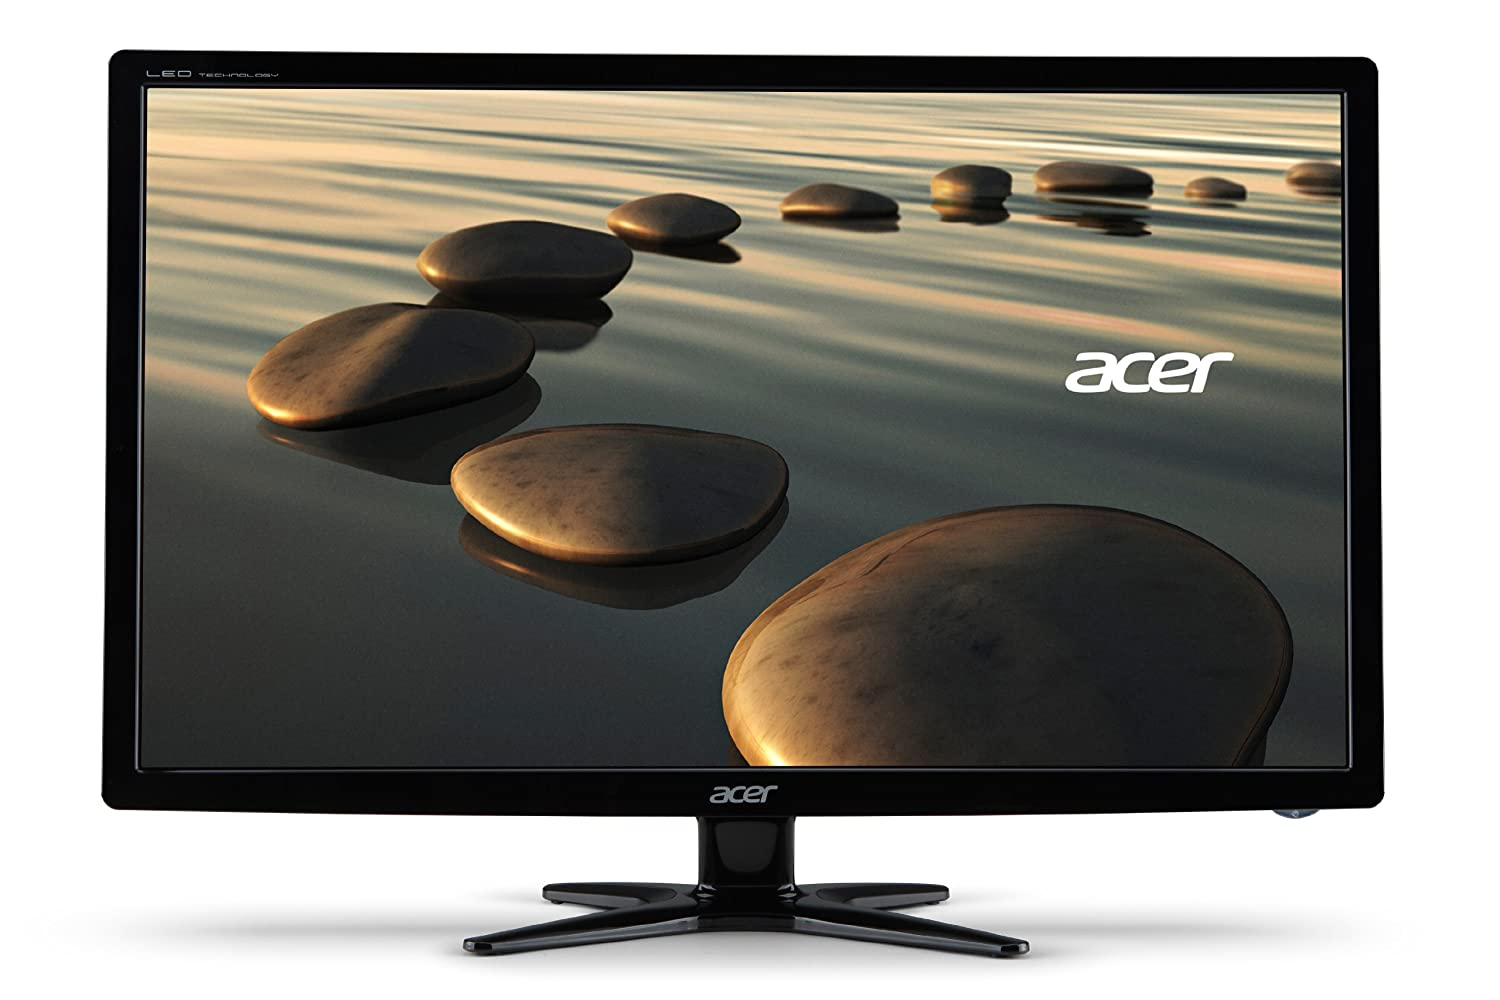 Acer G276HL Gbd Widescreen LCD Monitor, 27-Inch Full HD (1920 x 1080), Black